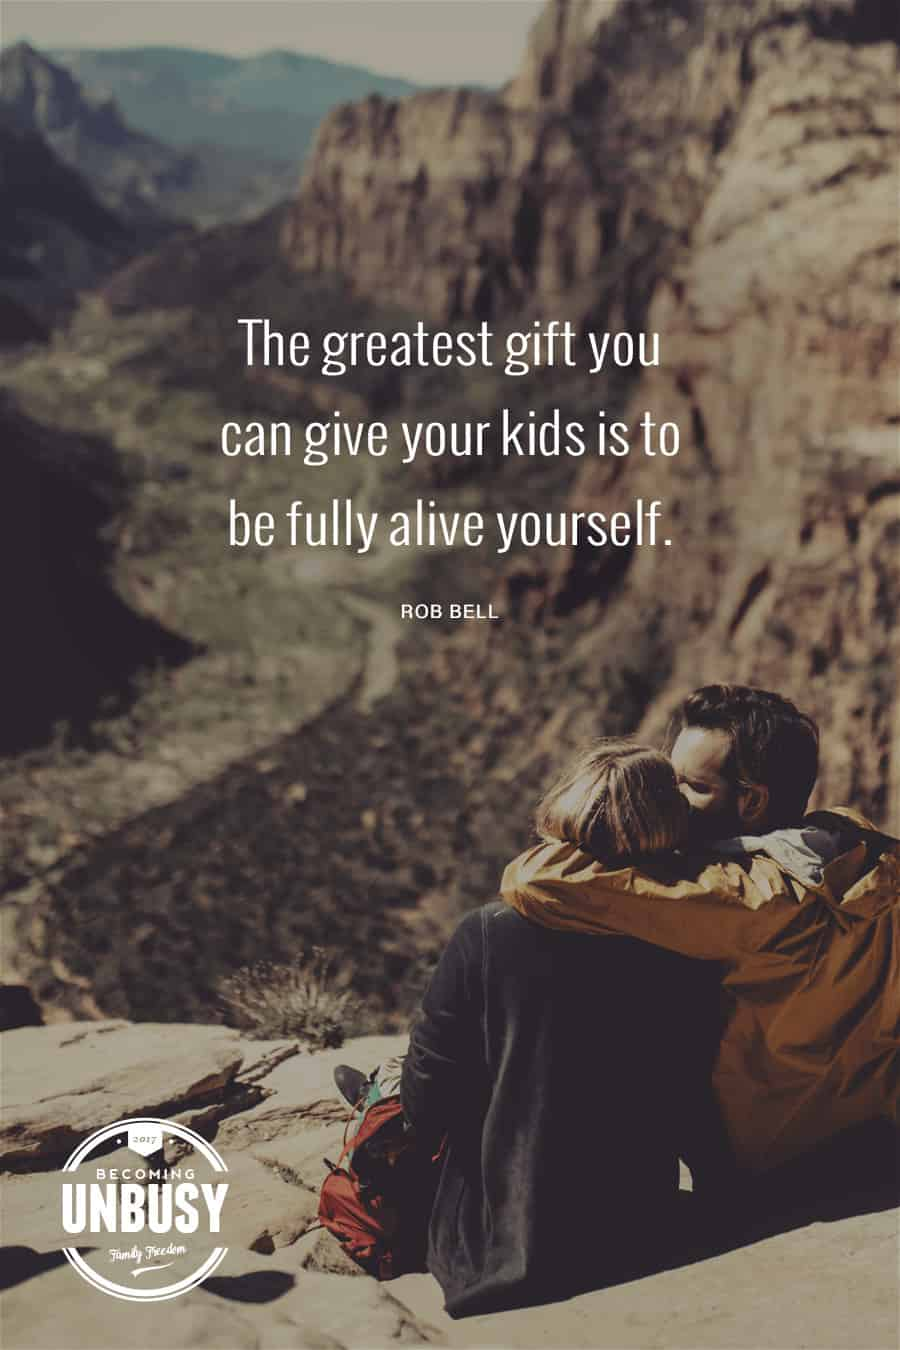 The greatest gift you can give your kids is to be fully alive yourself. - Rob Bell #quote #parenting #BecomingUnbusy *love this video and site